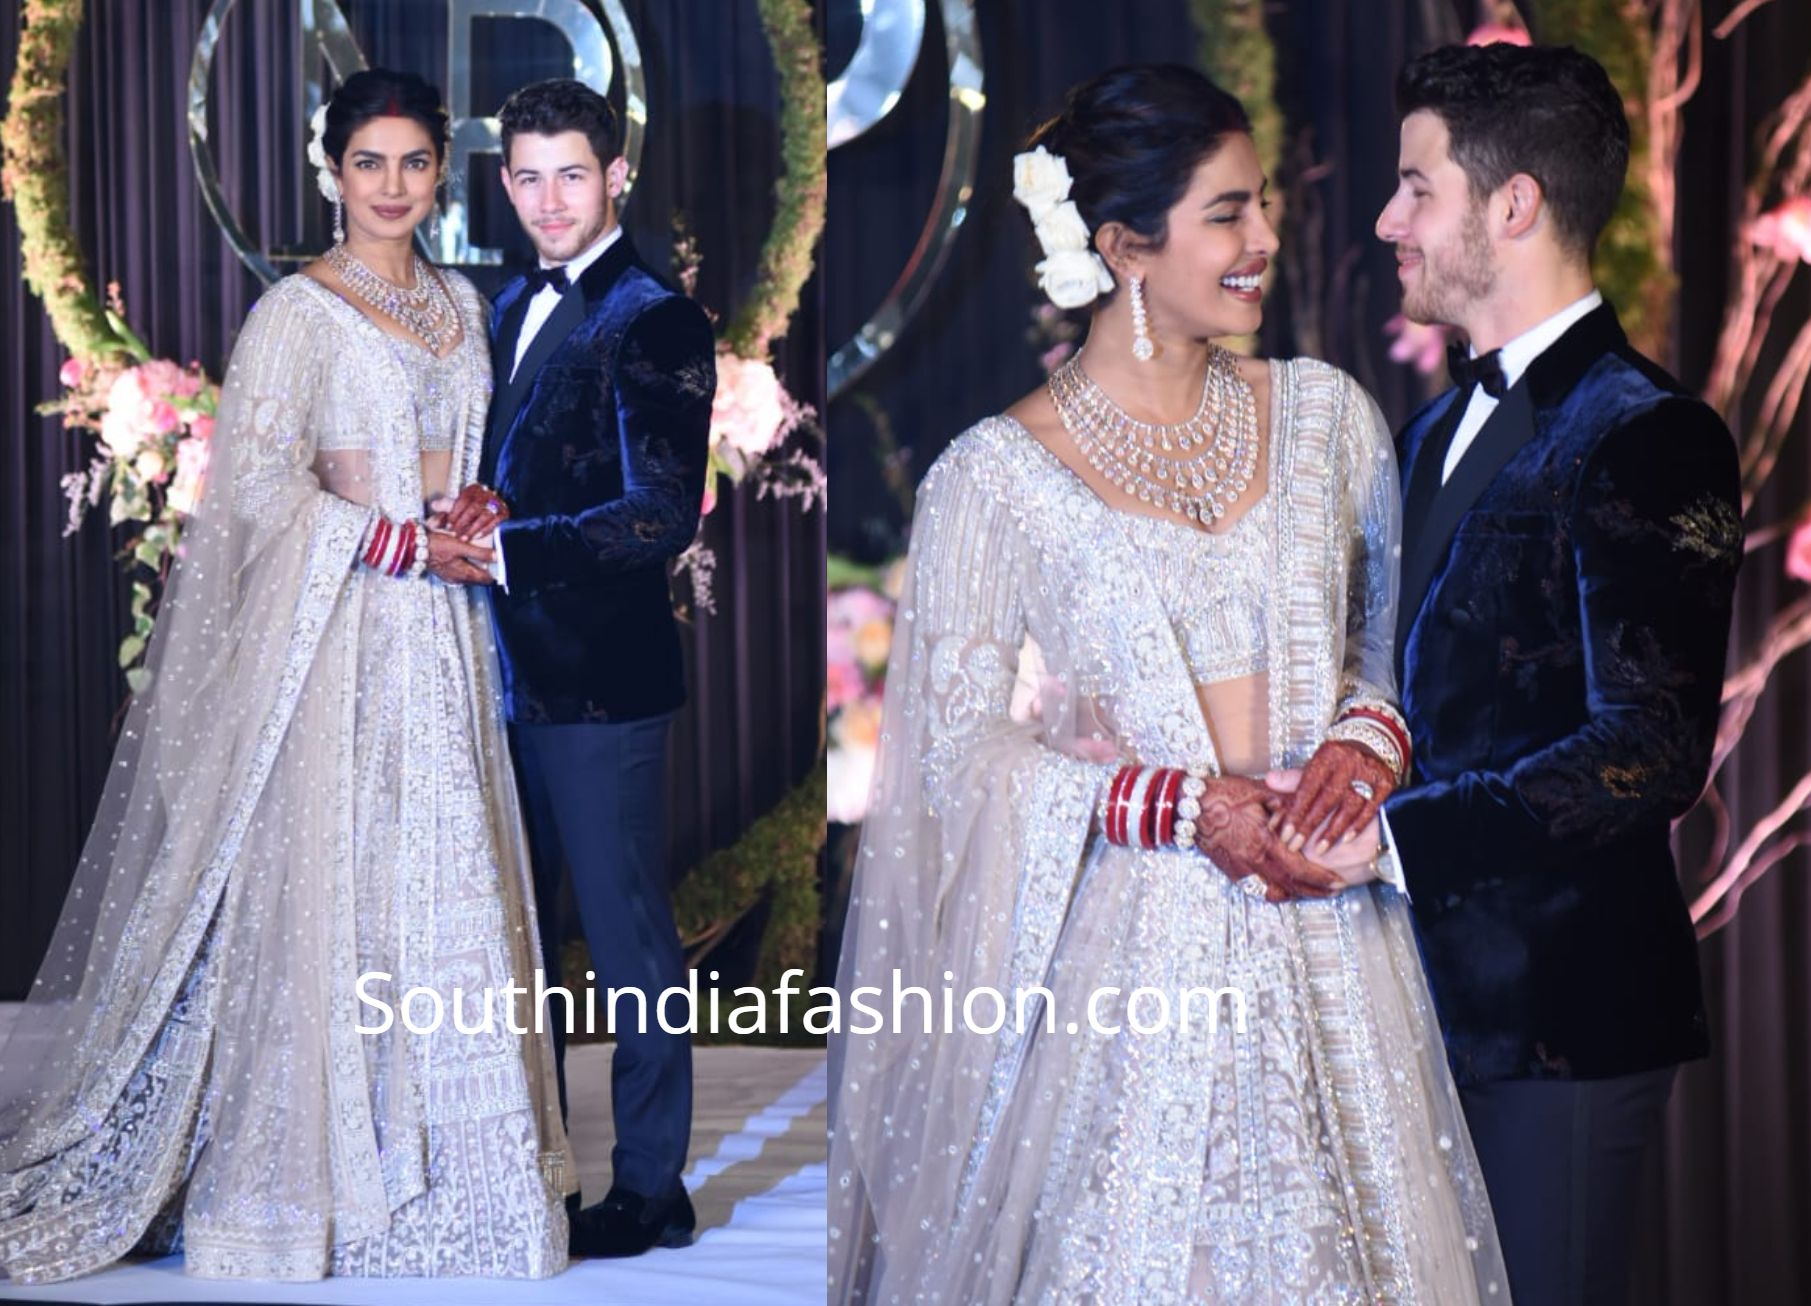 Priyanka Chopra And Nick Jonas At Their Delhi Wedding Reception